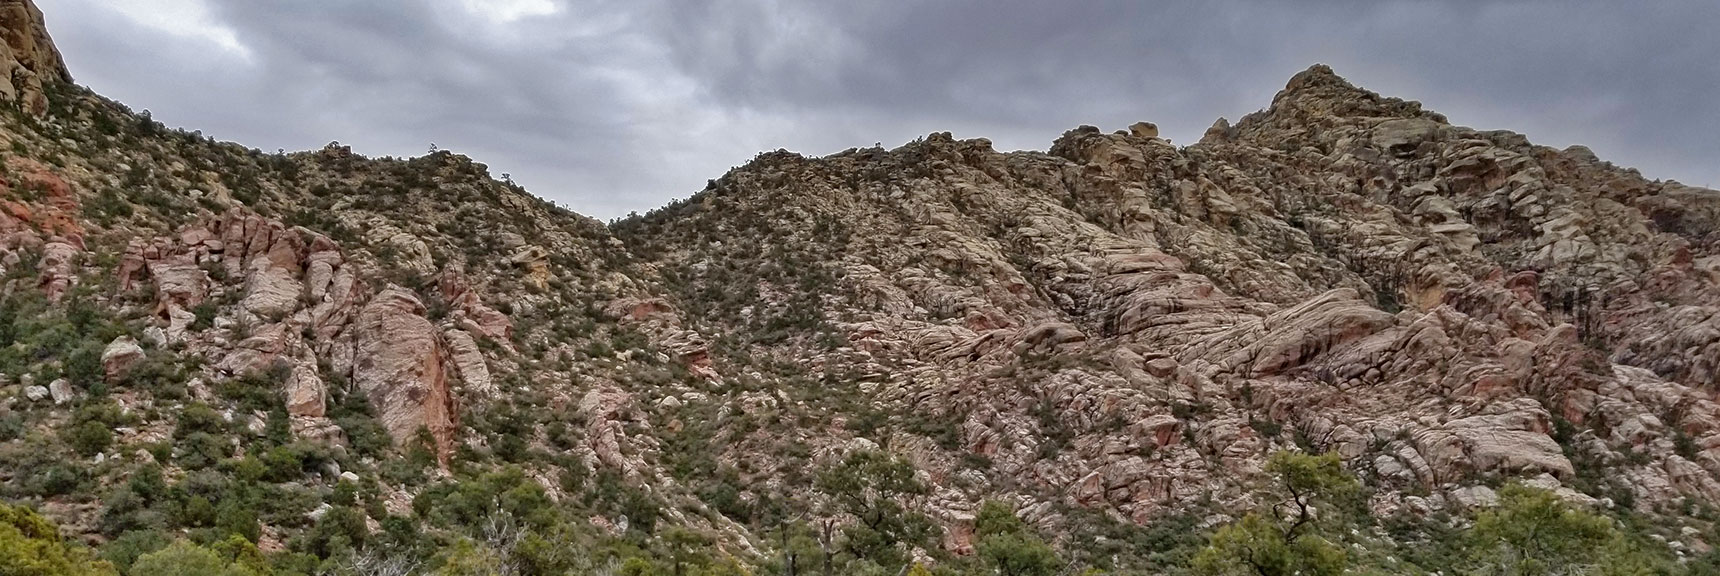 View of White Rock Mountain Saddle and Summit from White Rock Mountain Loop in Red Rock Park, Nevada